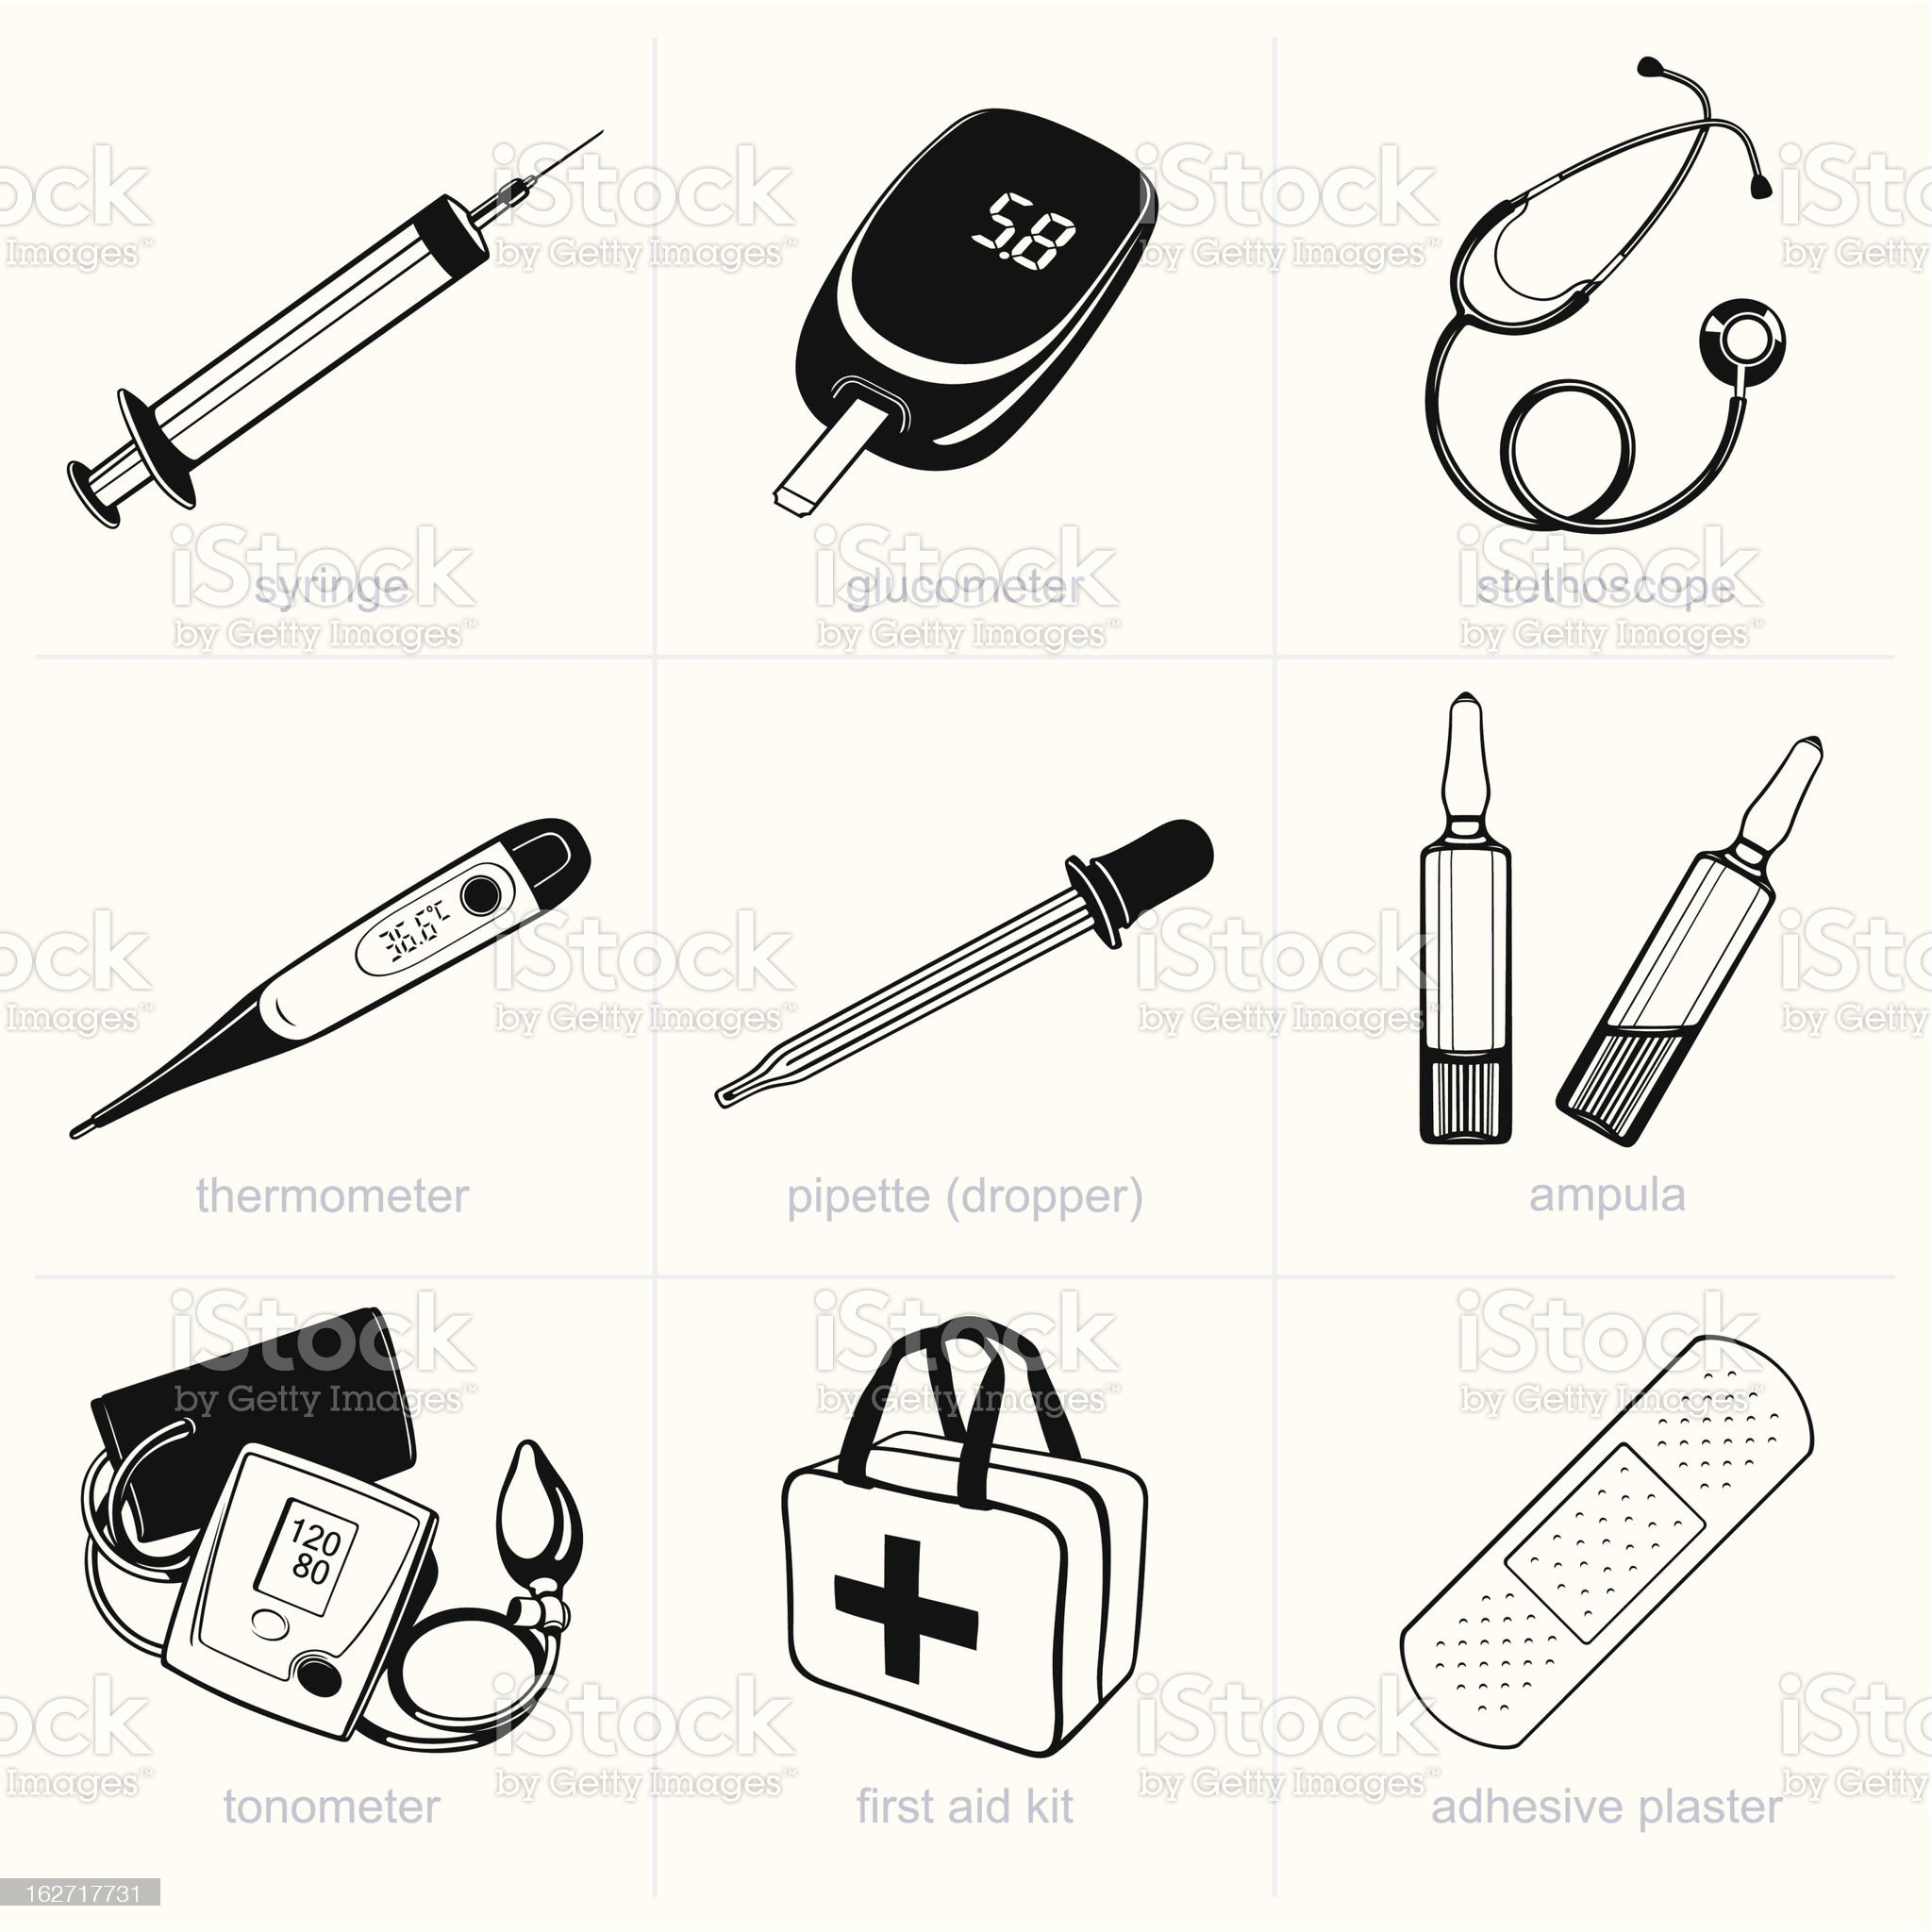 Medical equipment royalty-free stock vector art